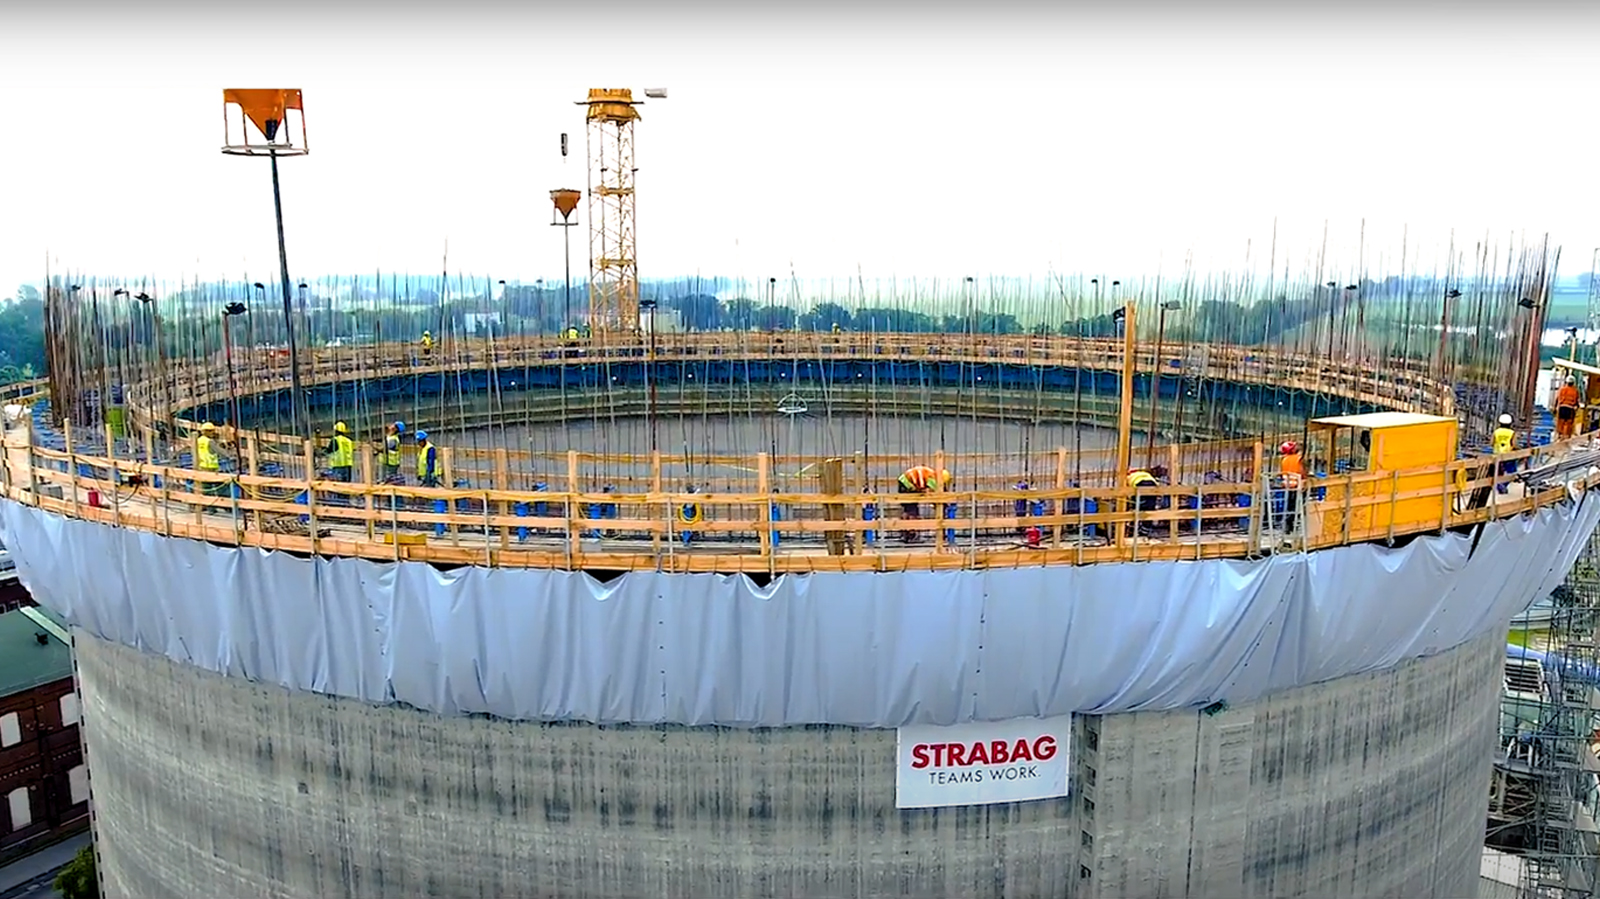 Construction of the 60 thou. ton capacity silo for storing loose sugar